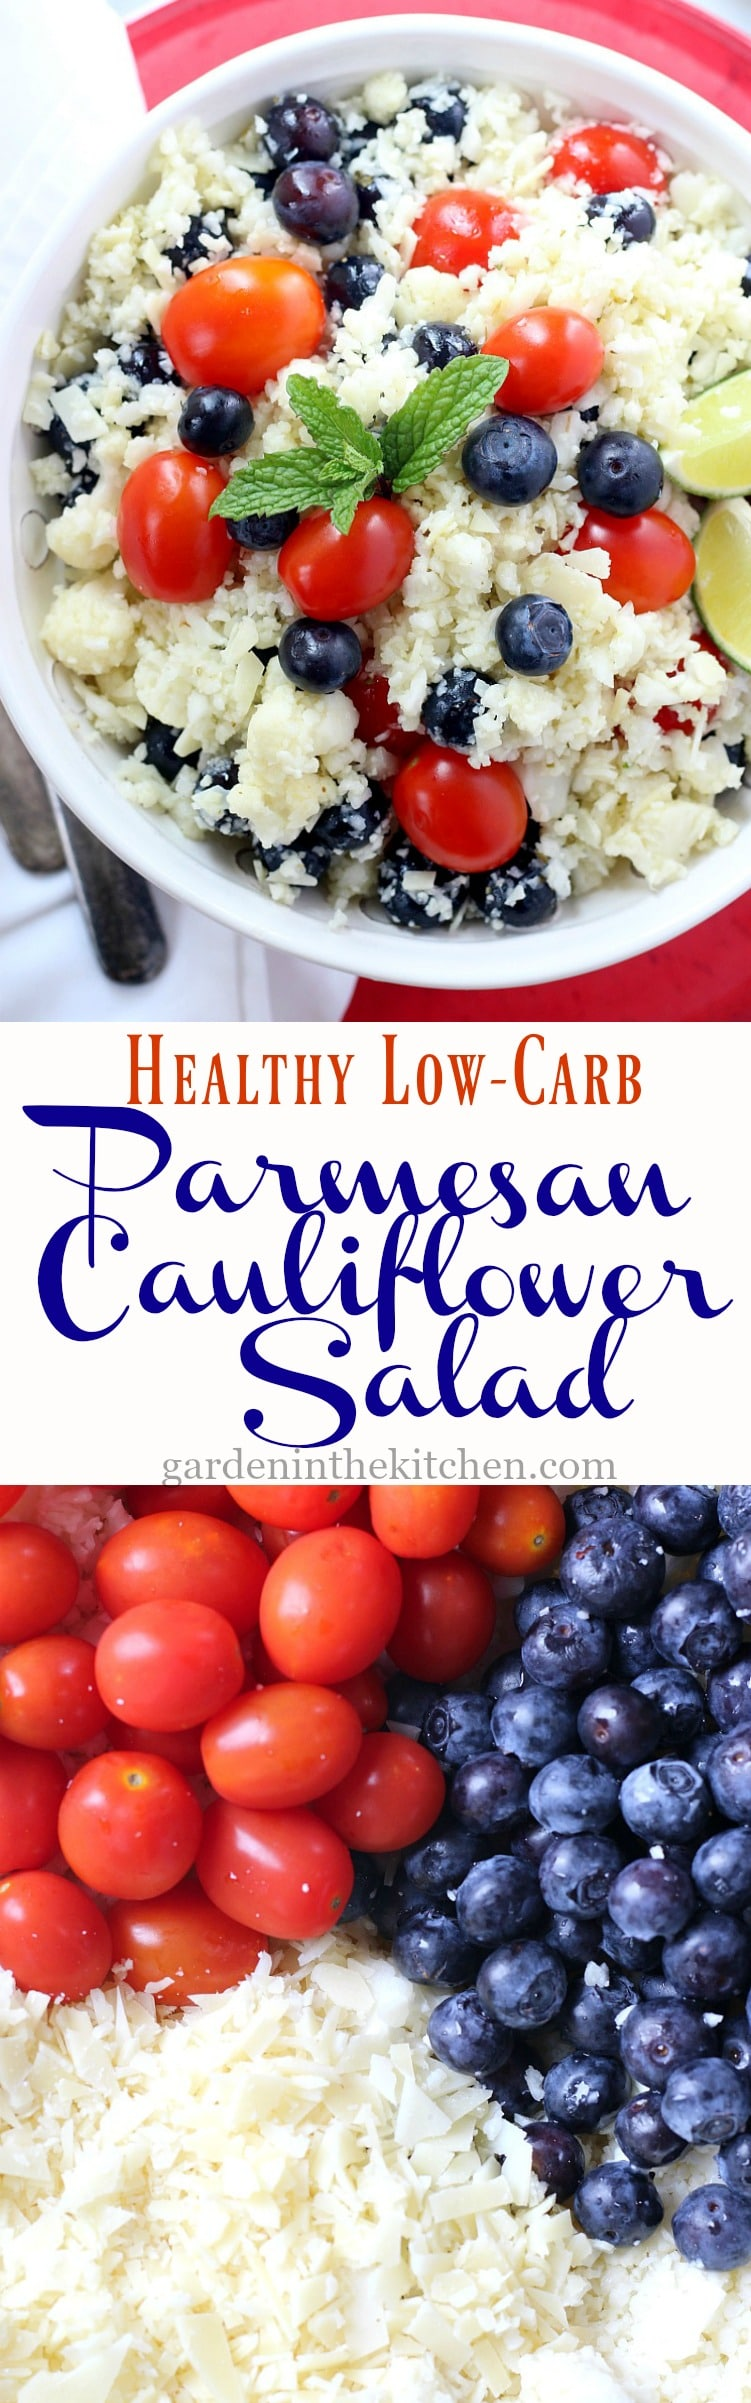 Healthy Low-Carb Parmesan Cauliflower Salad